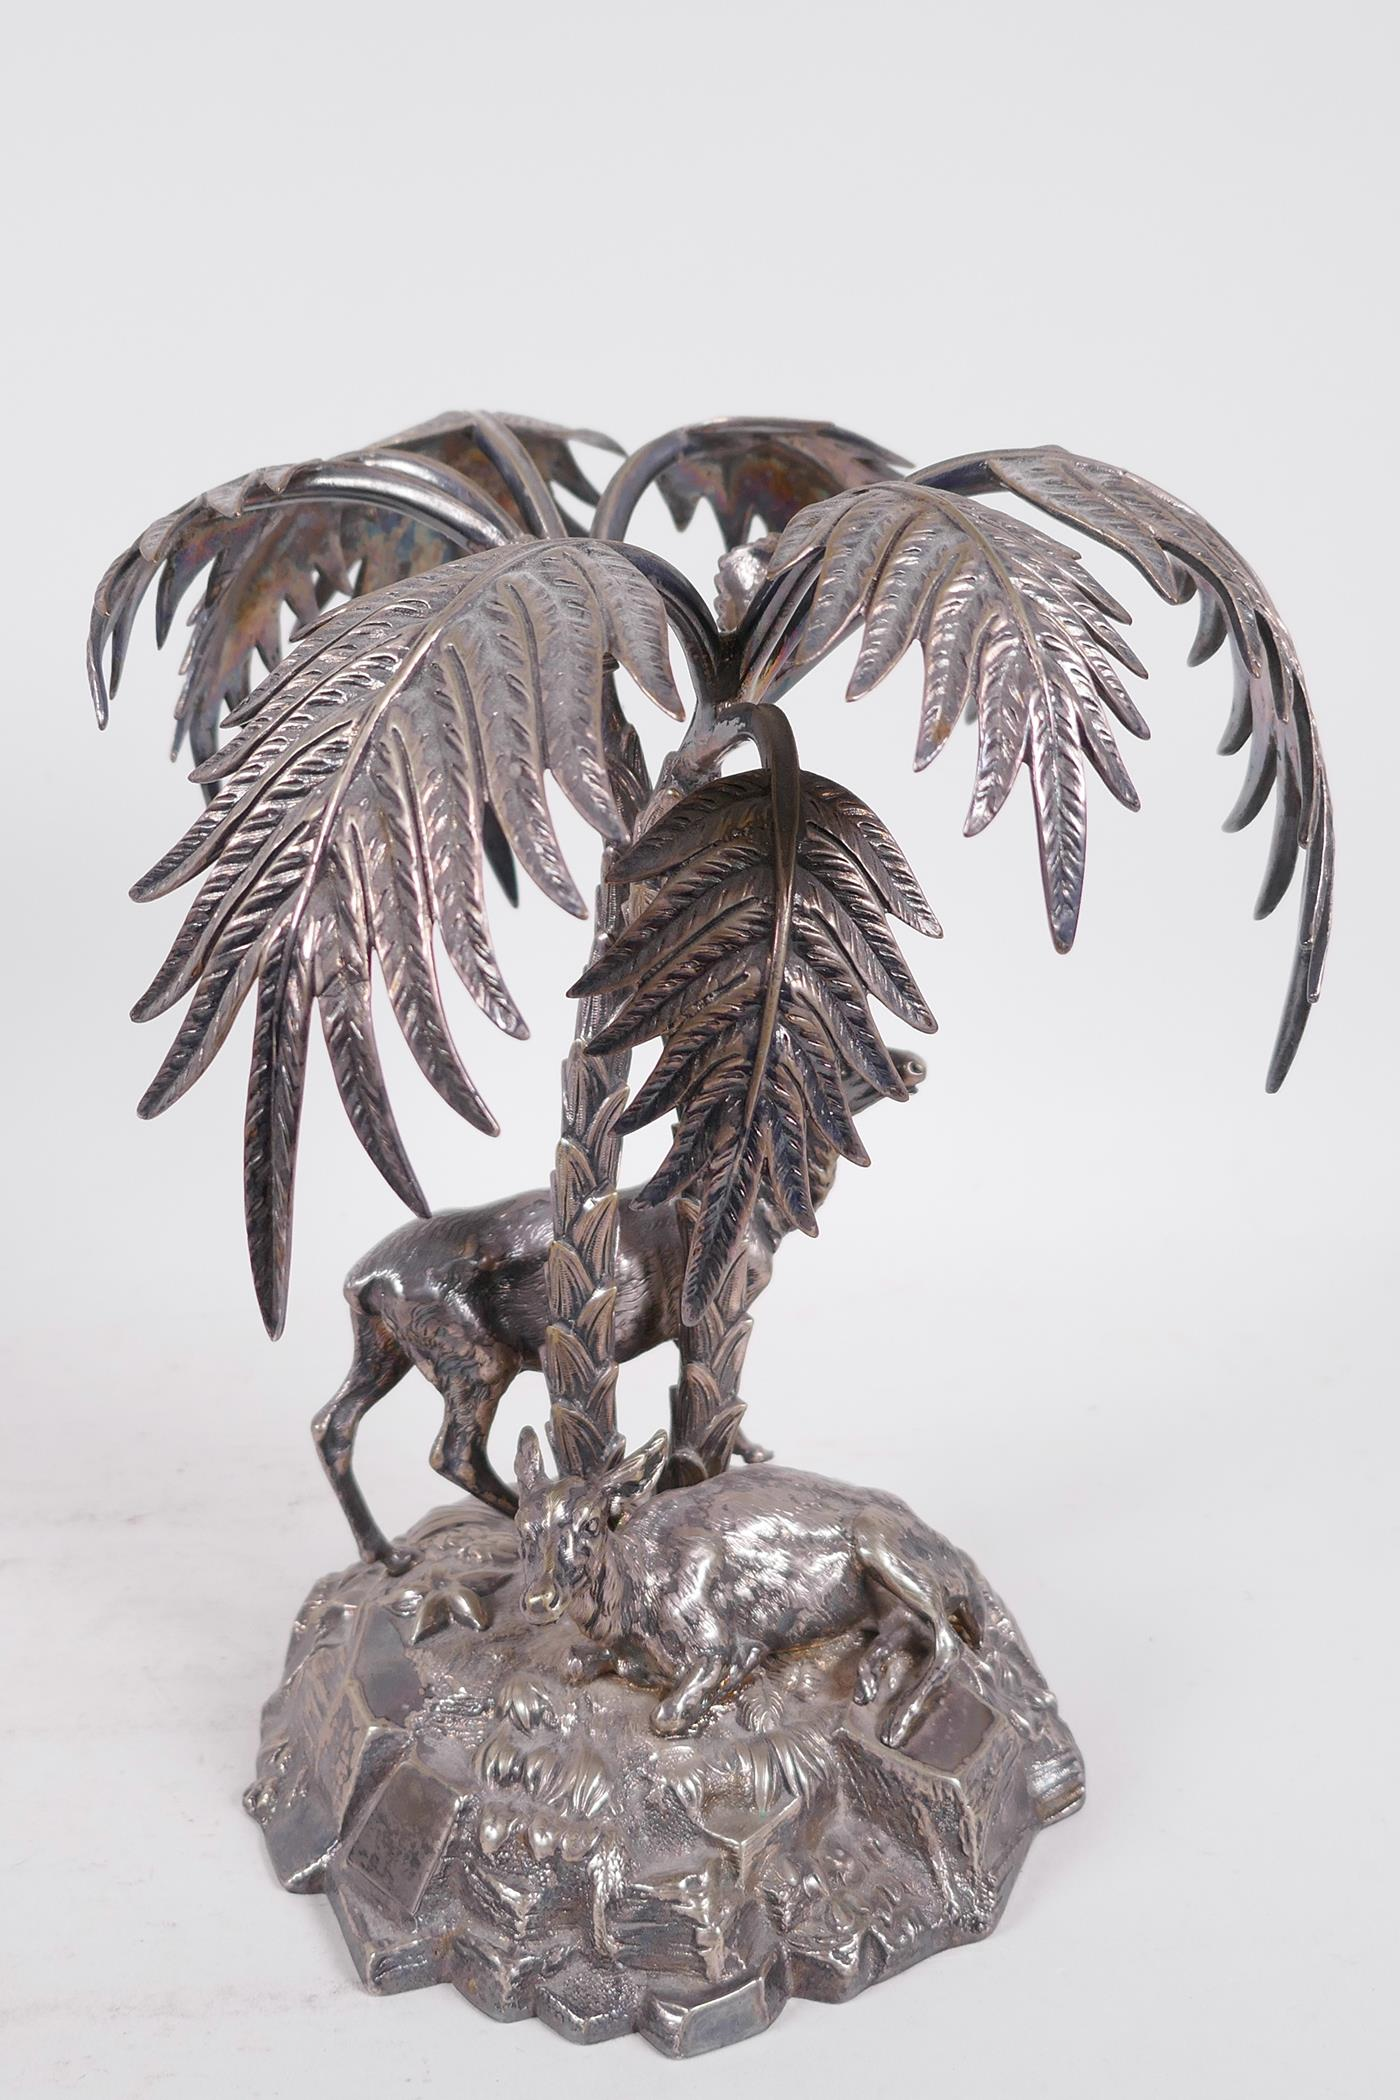 A C19th silver plated table centrepiece formed as deer under a palm tree by Thomas Bradbury and - Image 5 of 6